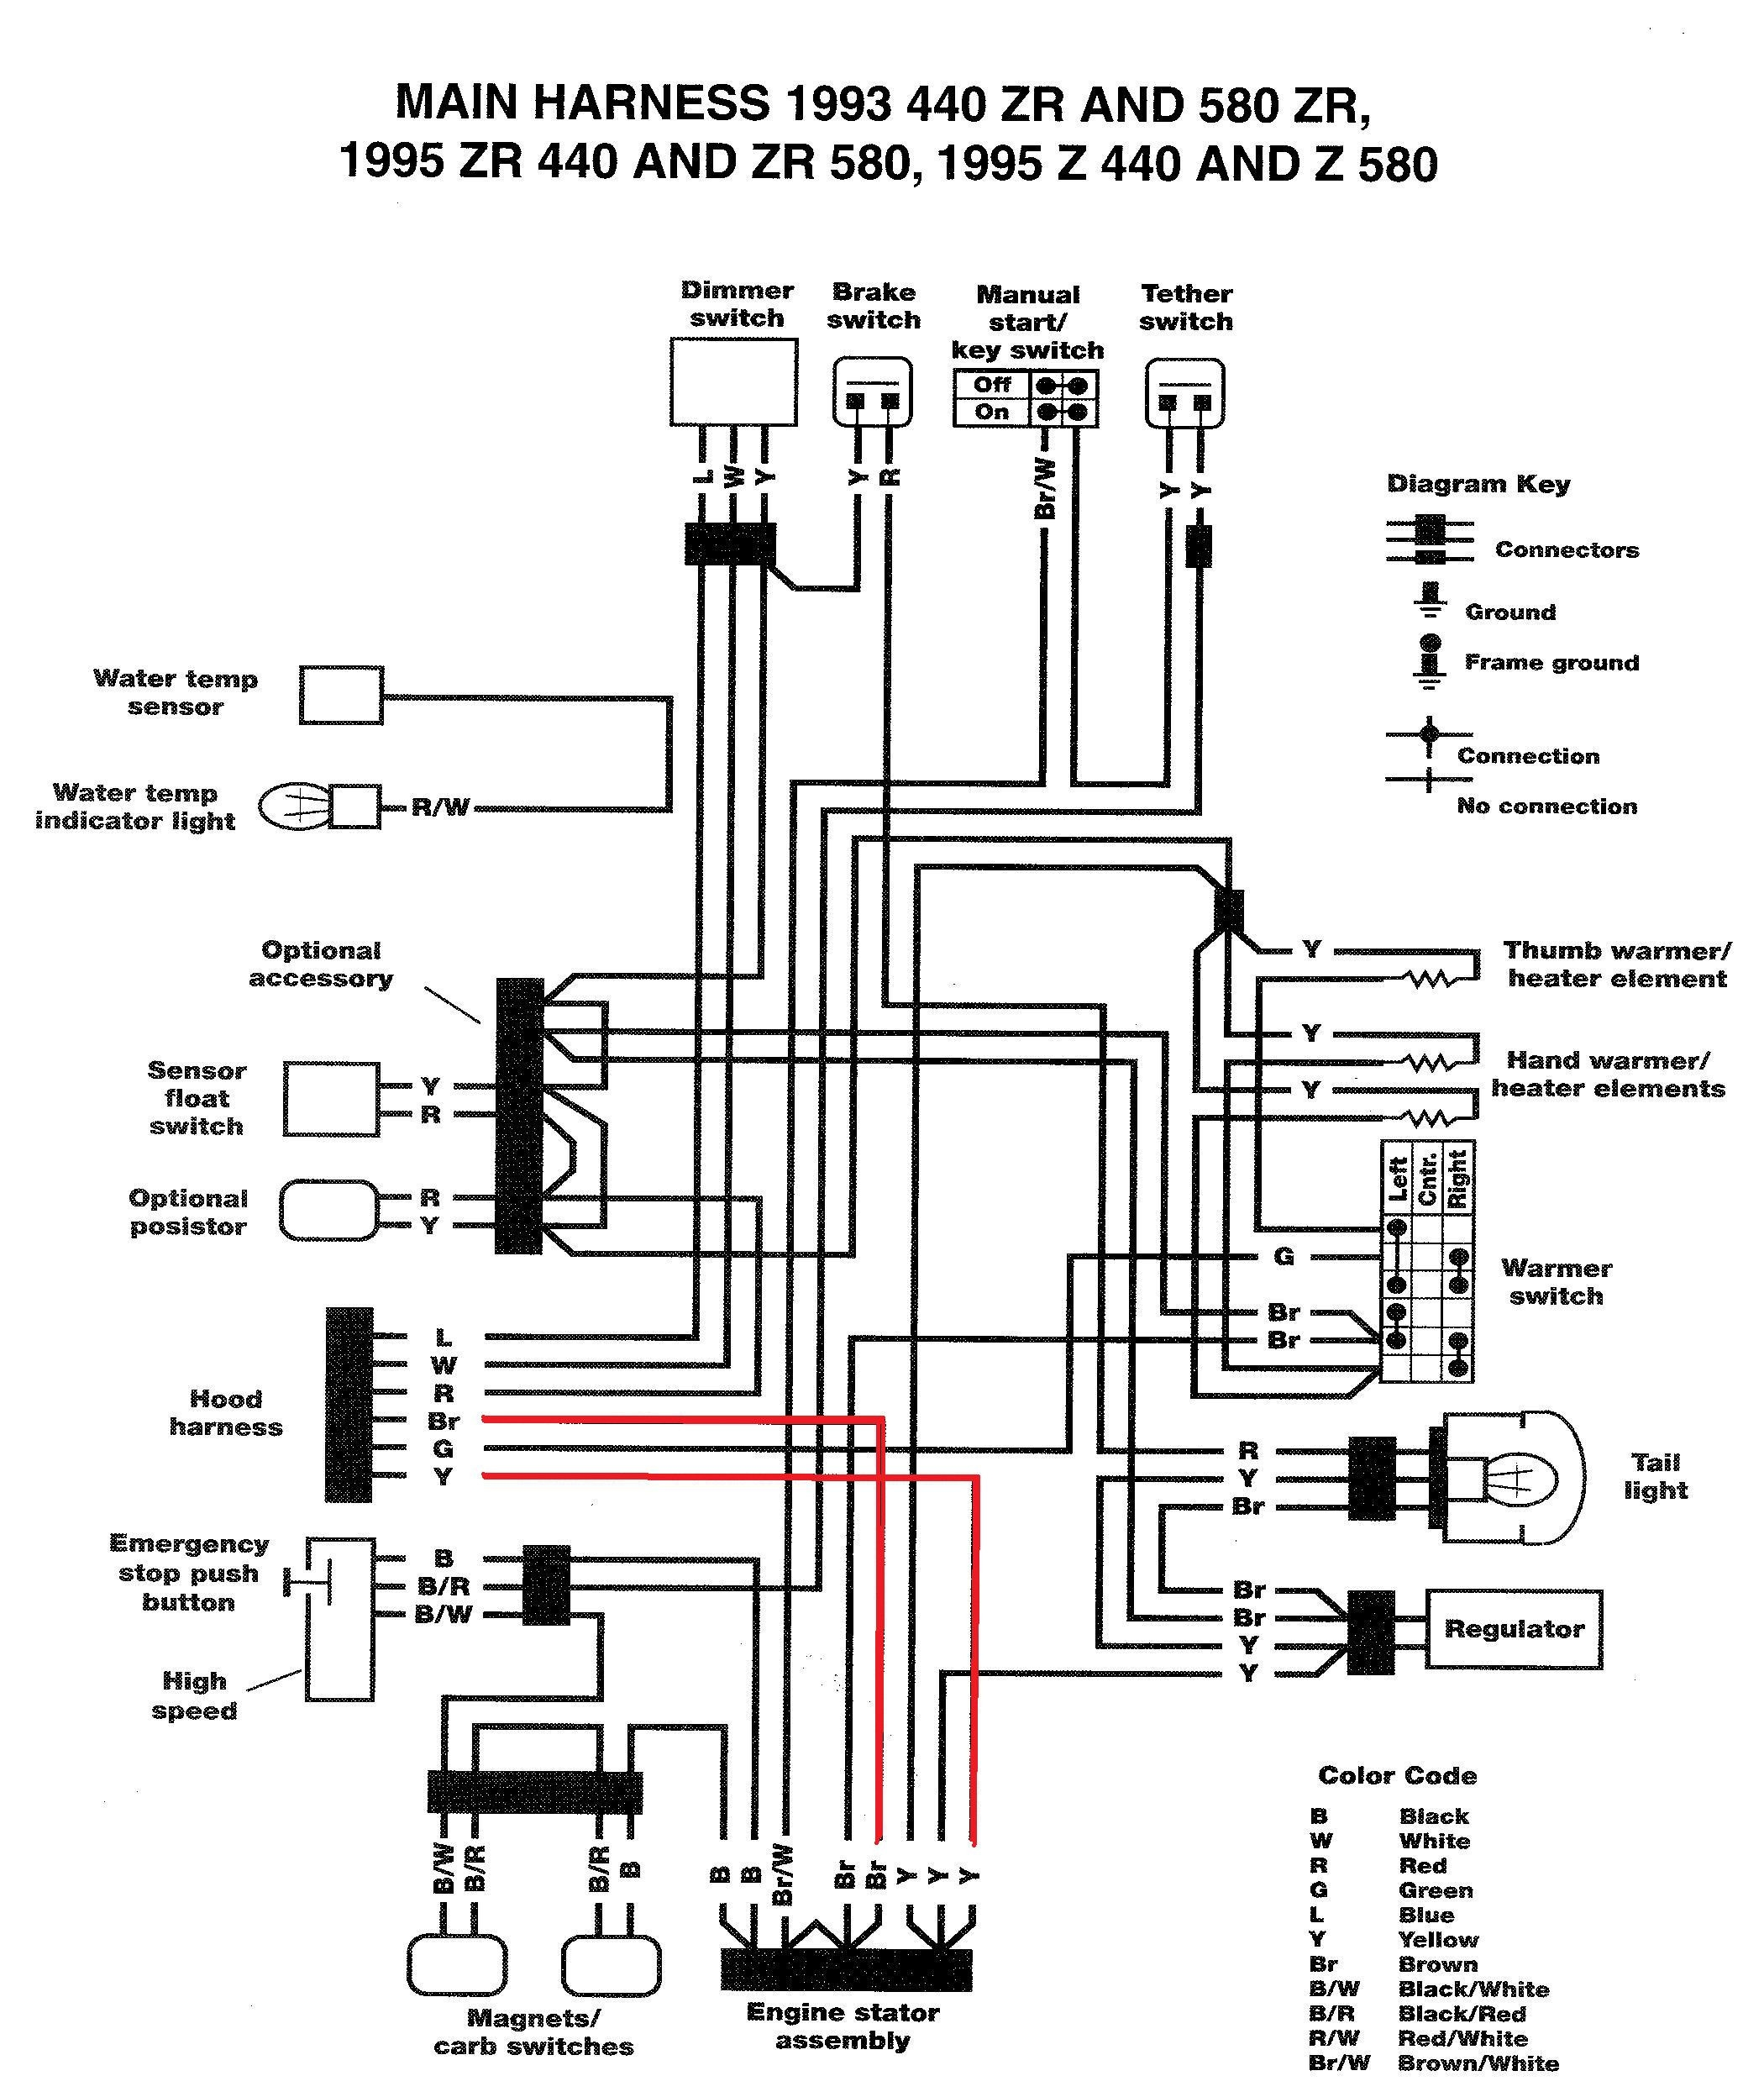 2006 Yamaha Raptor Wiring Diagram Schematic -1997 Ford Taurus Engine Diagram  | Begeboy Wiring Diagram SourceBegeboy Wiring Diagram Source